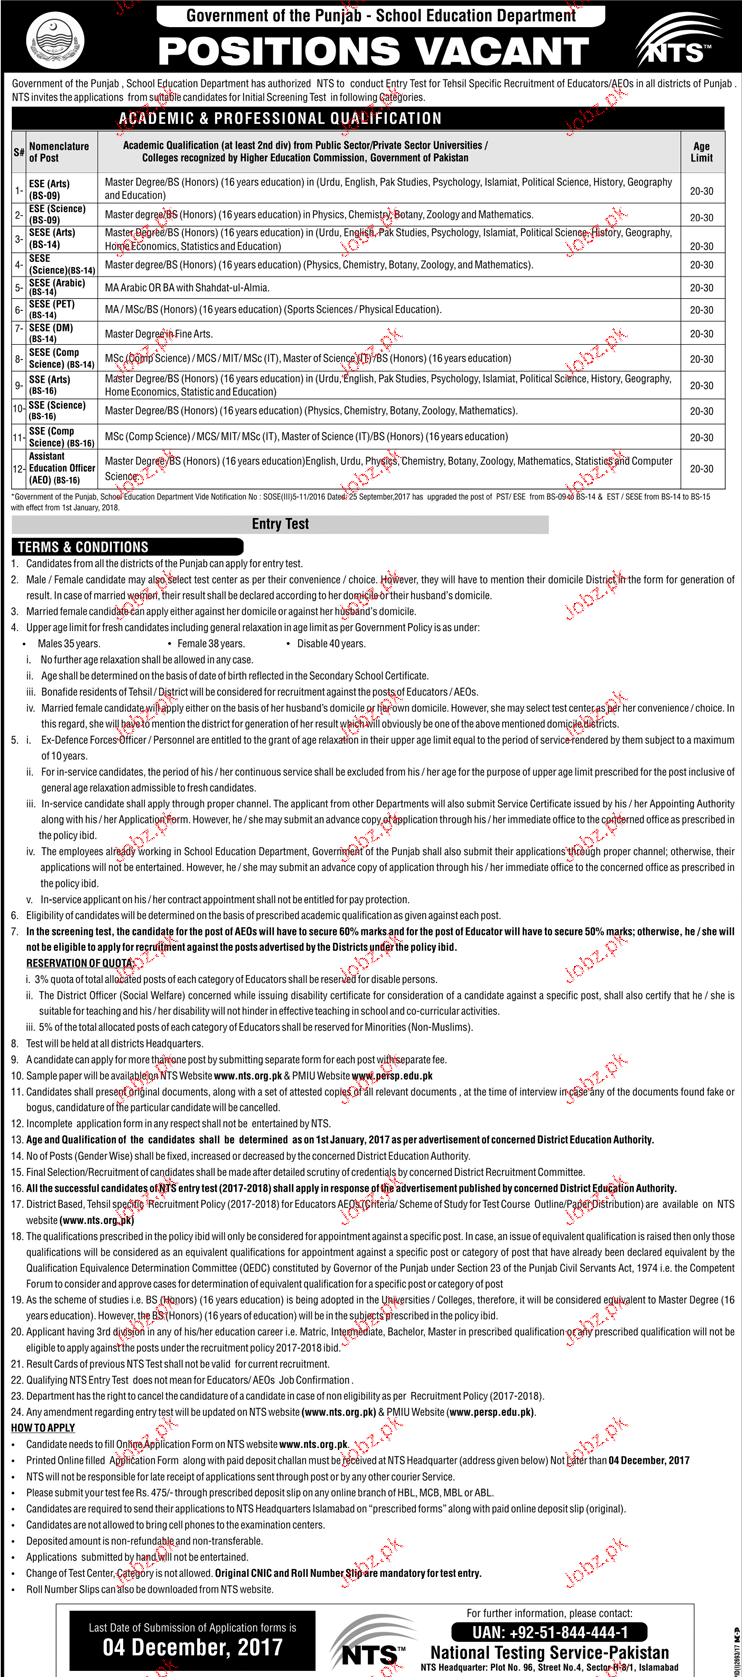 School Education and Literacy Department NTS Jobs